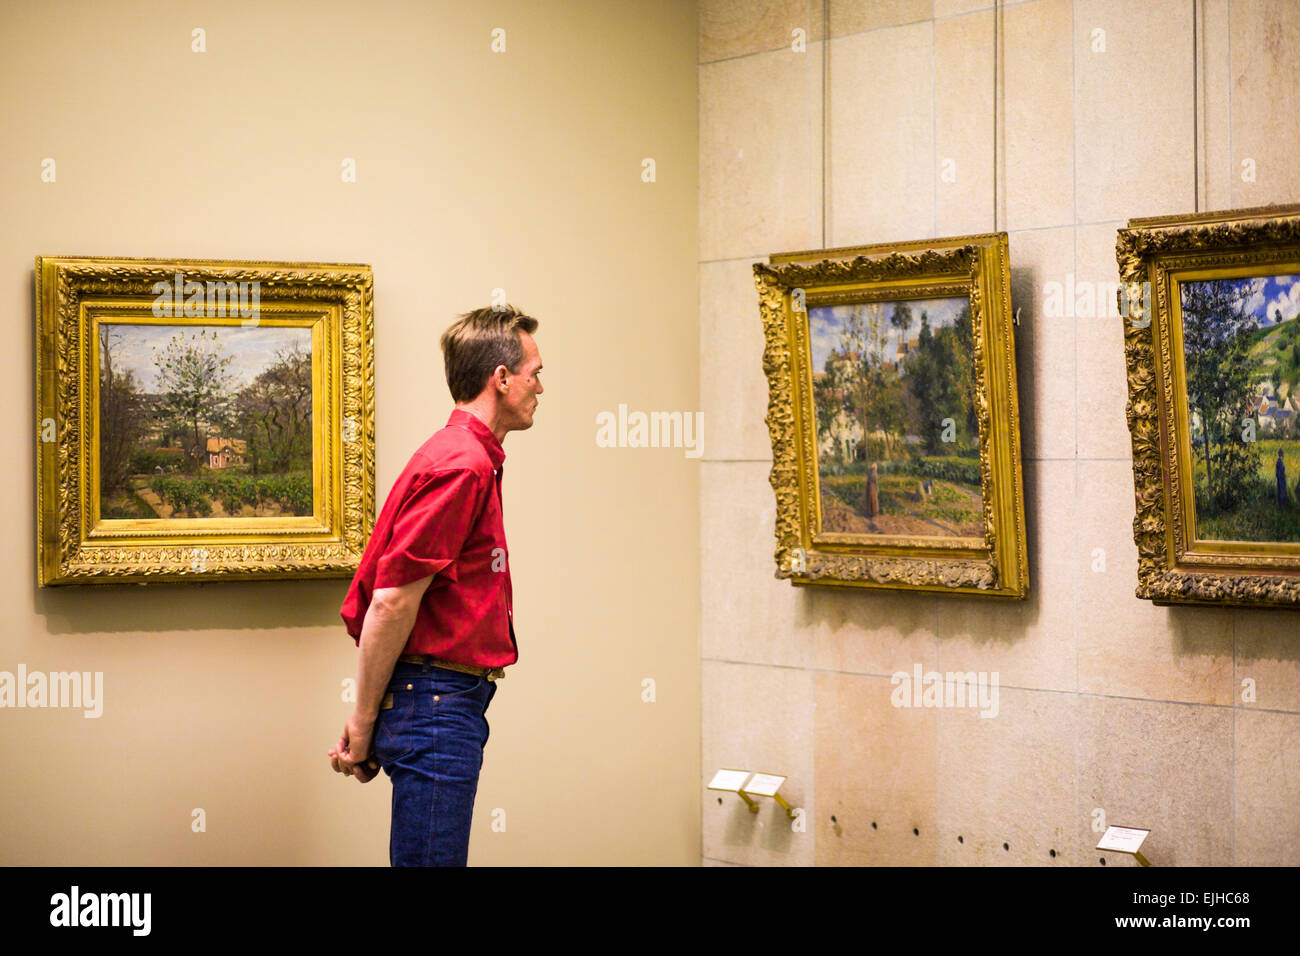 Admiring Art Stock Photos & Admiring Art Stock Images - Alamy